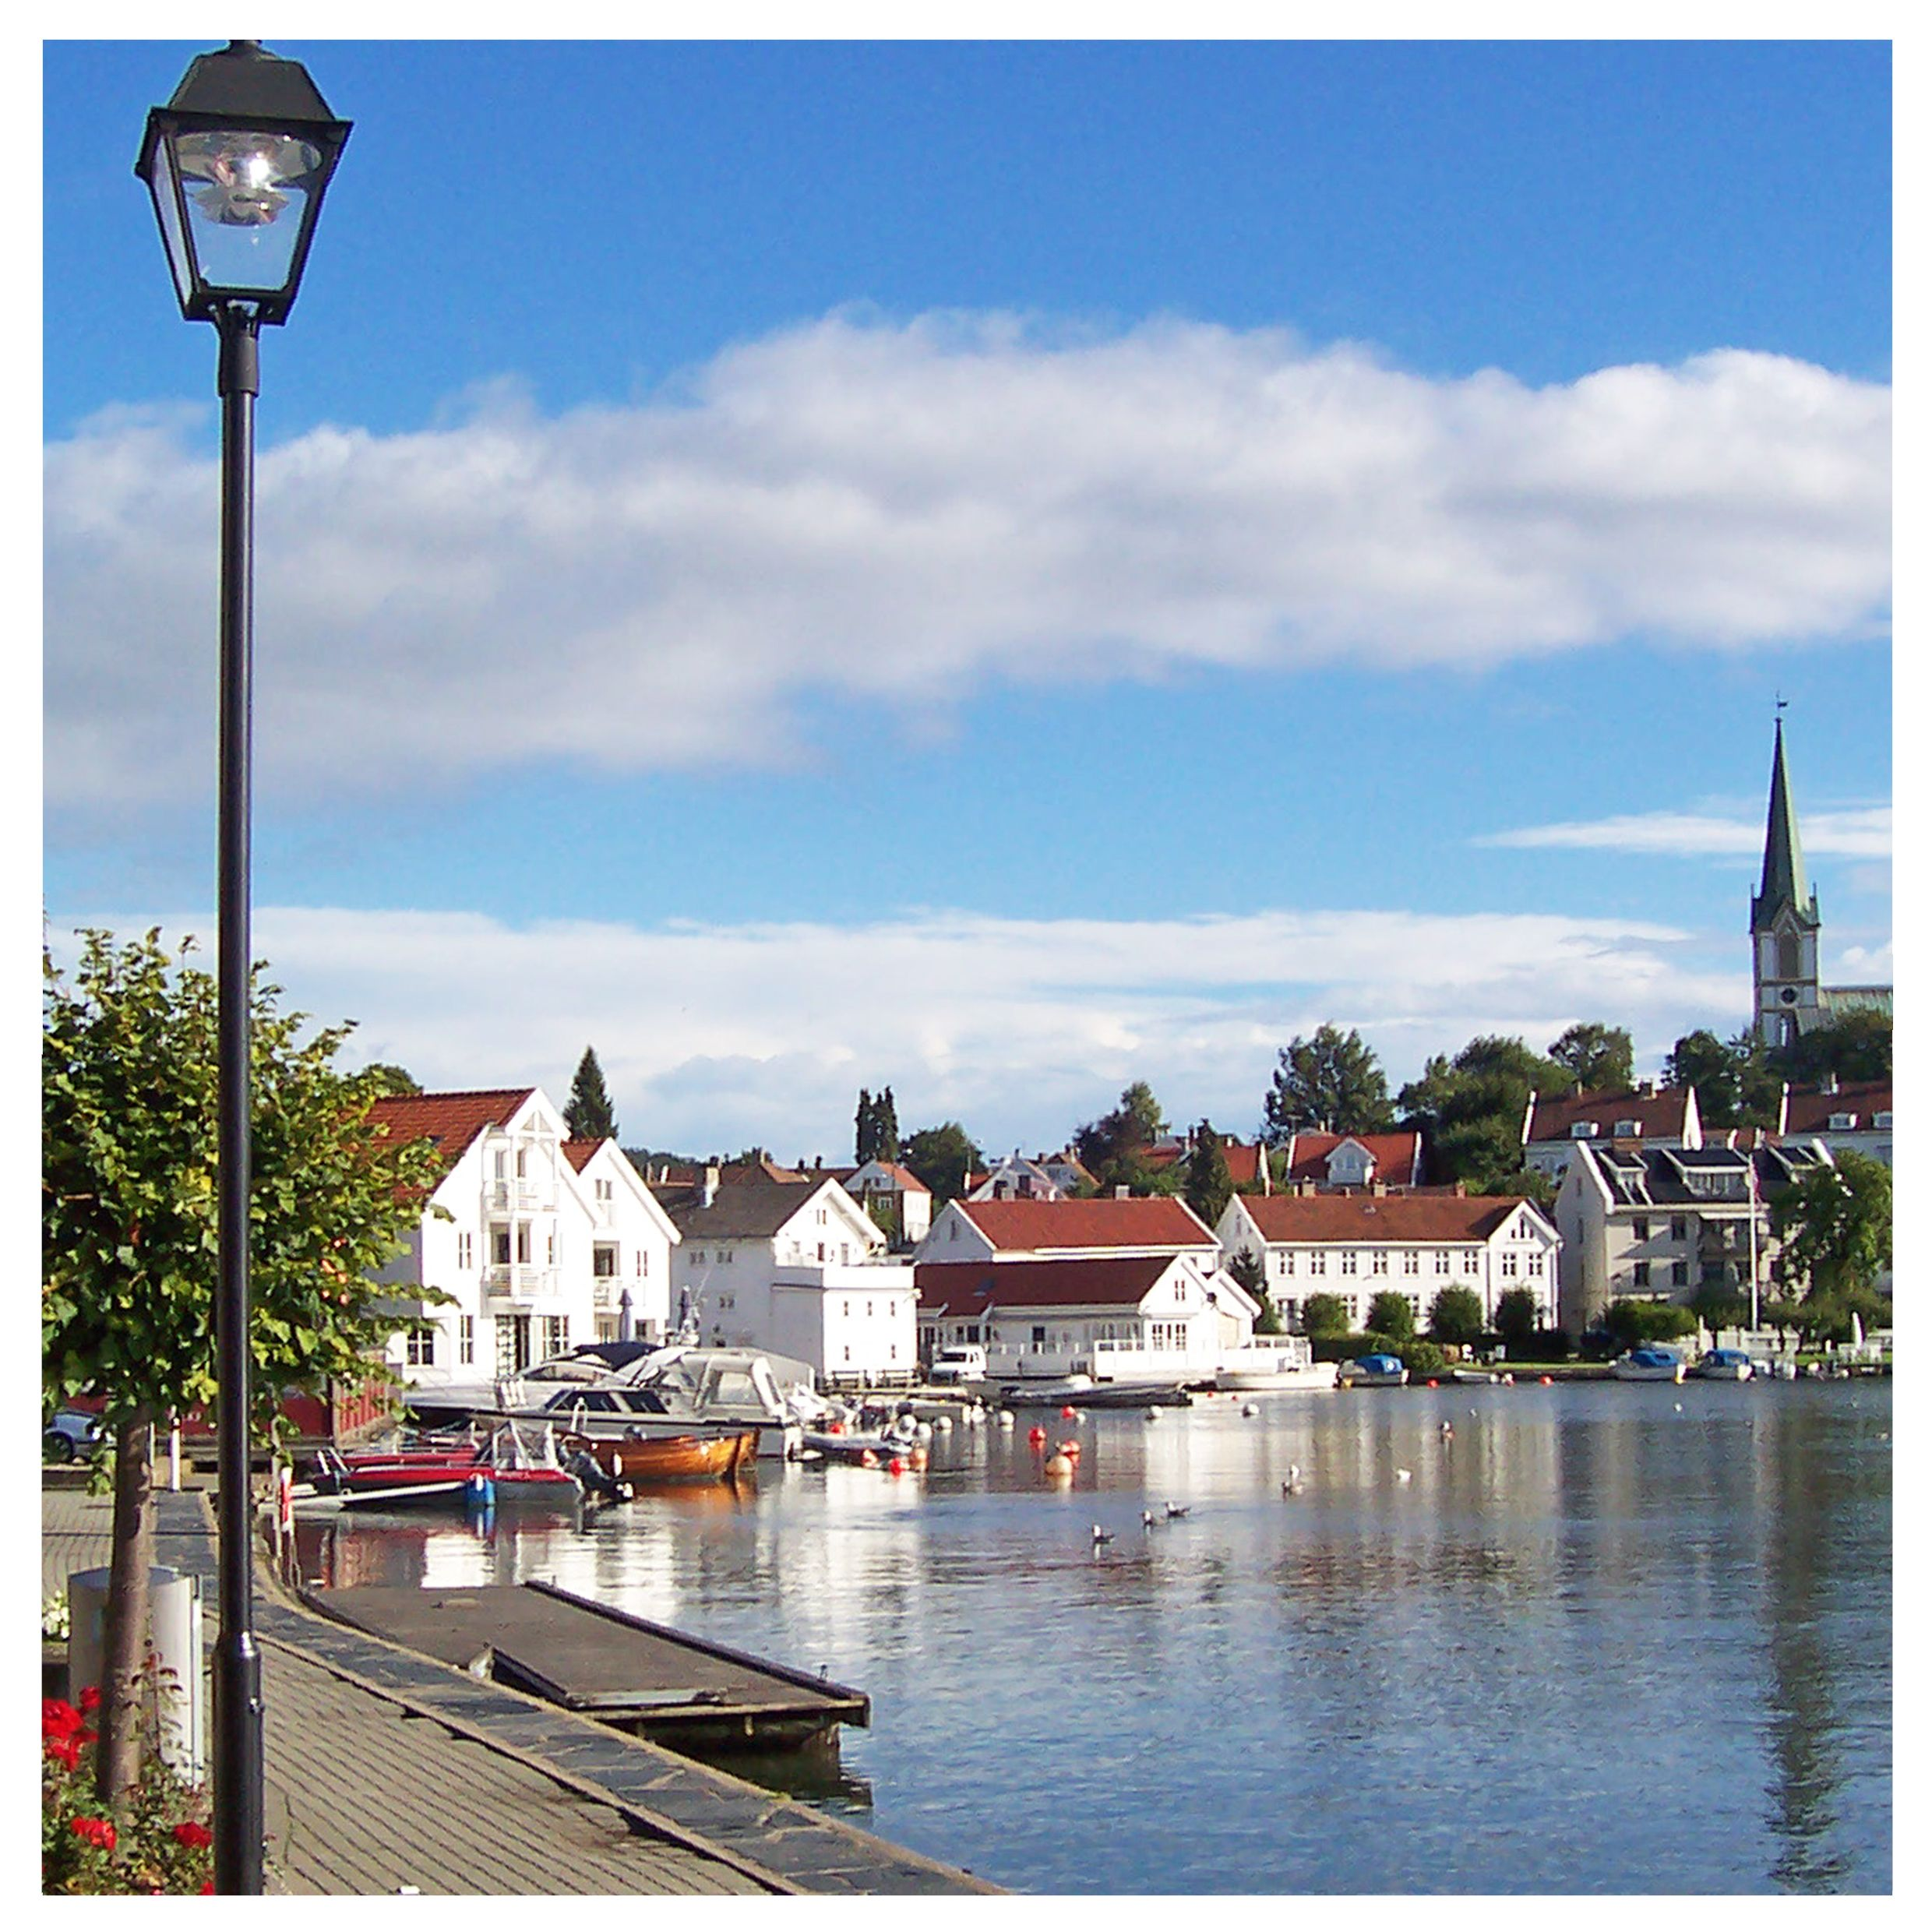 Situated On The Southern Coast Of Norway Kristiansand Is